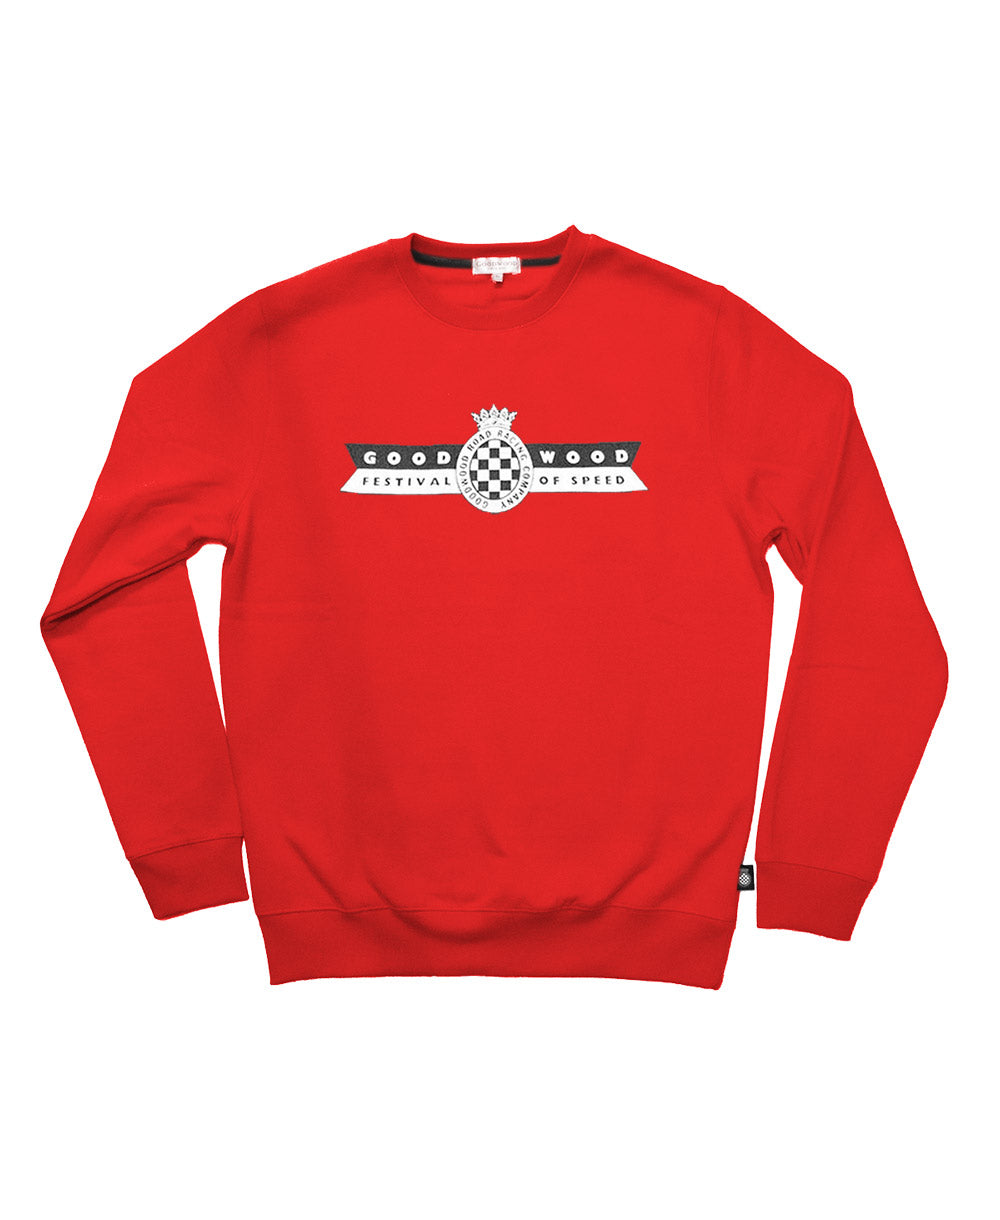 Festival of Speed Racing Colours Sweatshirt Red